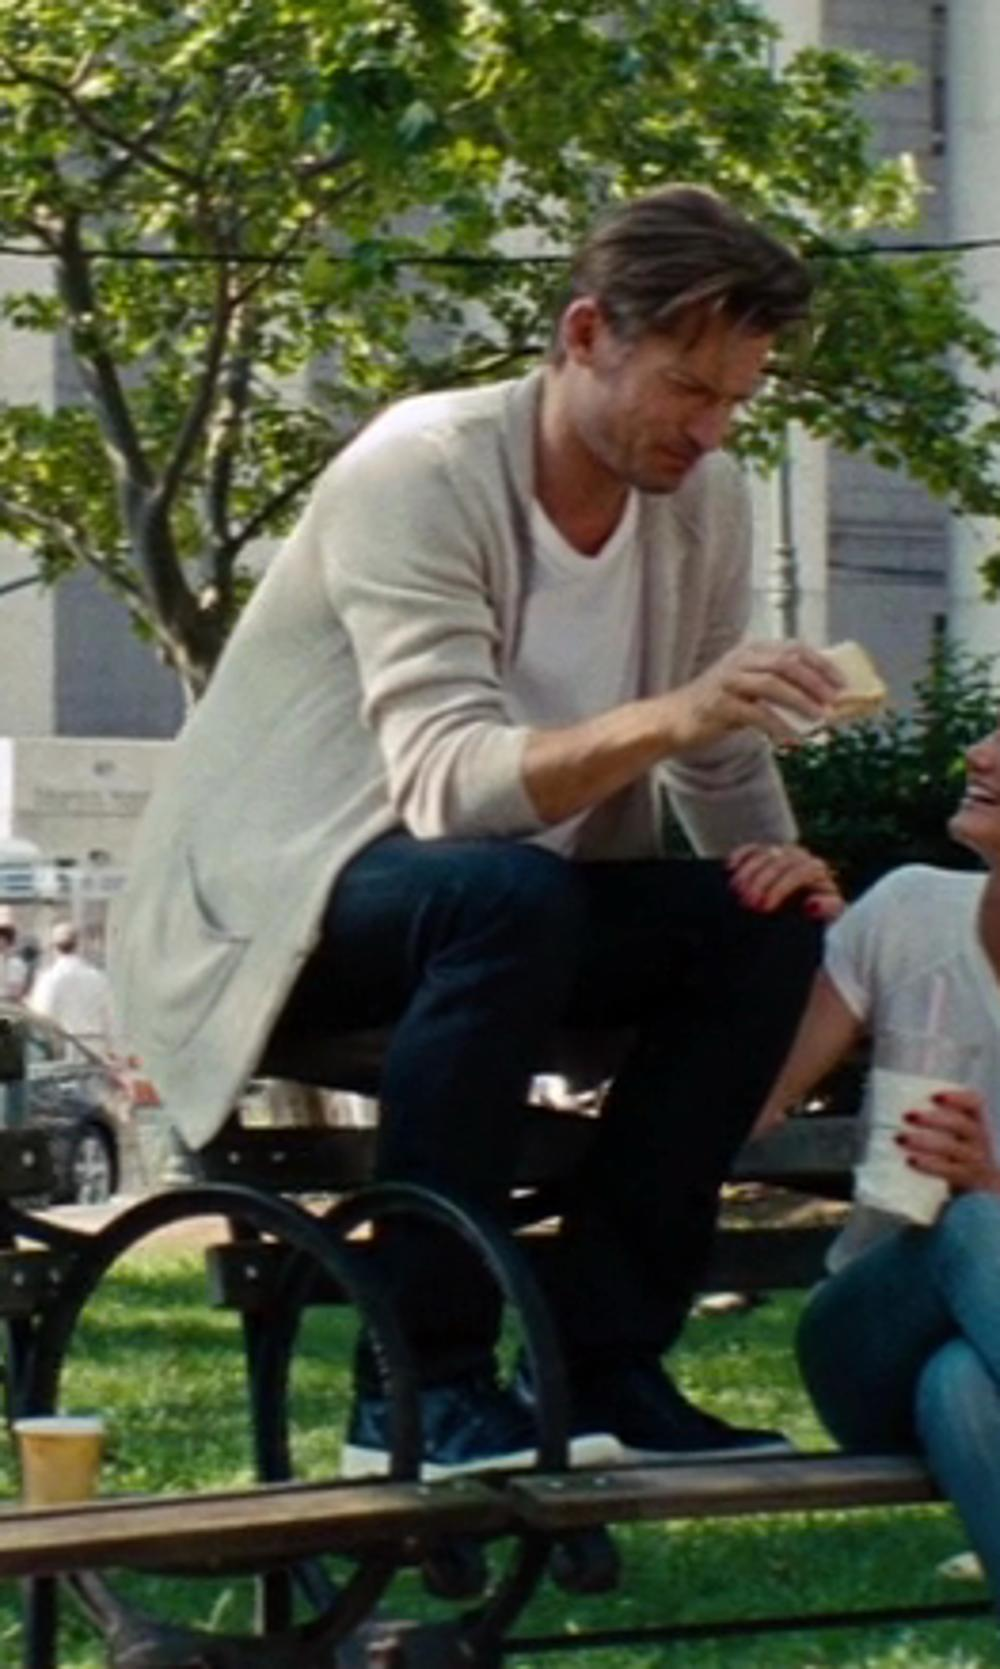 Nikolaj Coster-Waldau with Dolce & Gabbana Low Sneakers in The Other Woman